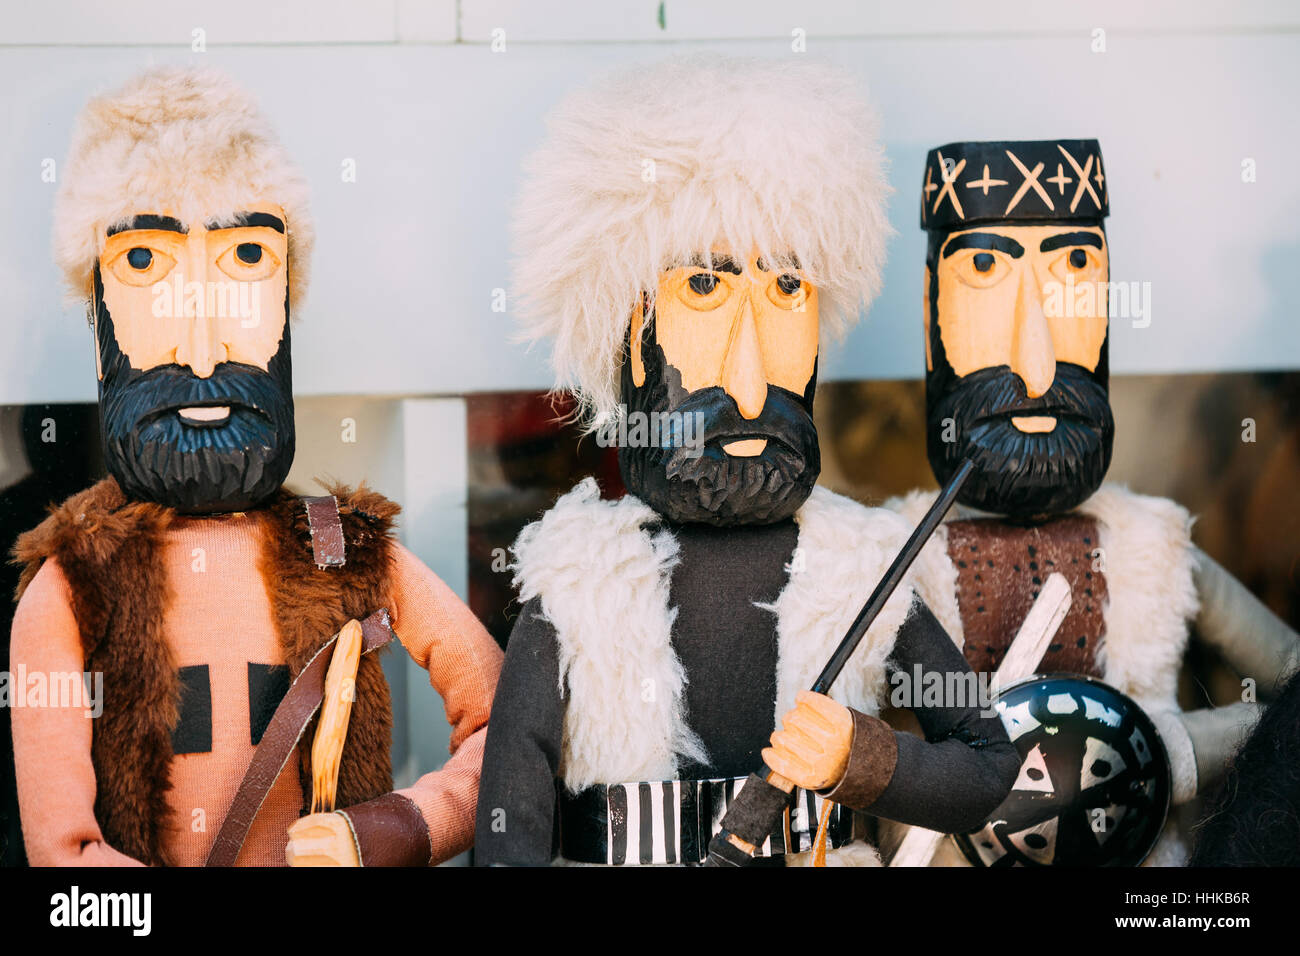 Close Three Wooden Dolls In The Similitude Of Highlanders, Caucasus Georgian Men In Traditional Clothes. - Stock Image